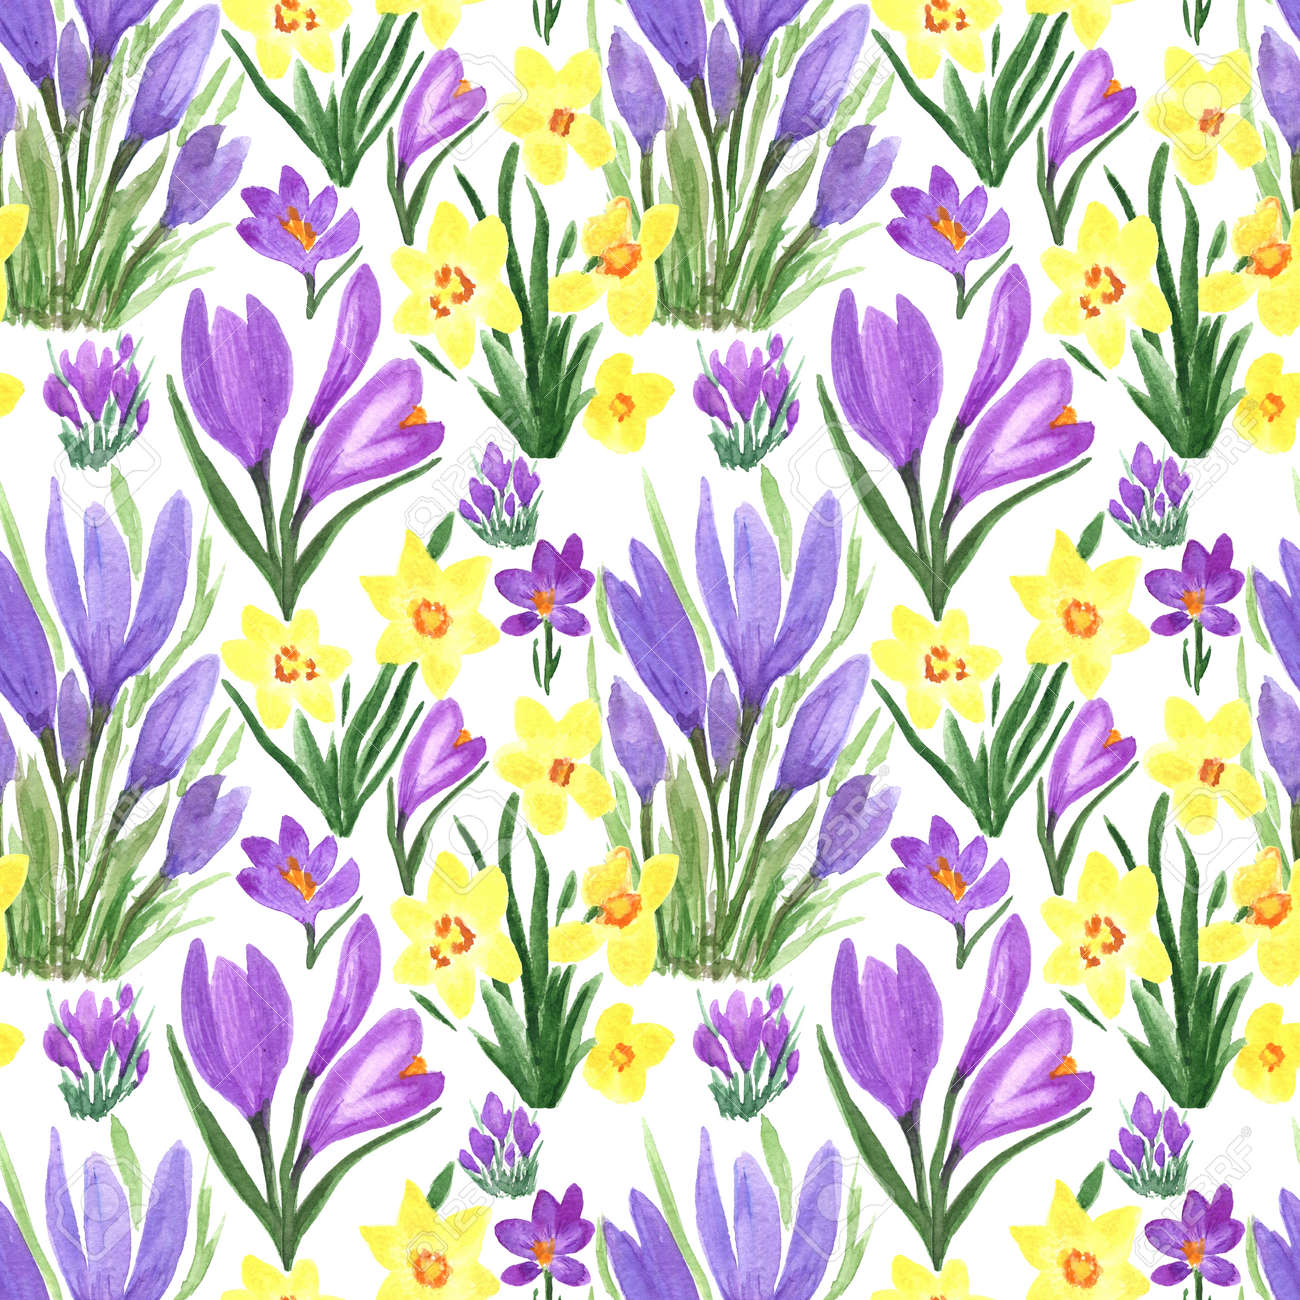 Waterclor colorful seamless pattern of spring flowers. Hand Illustration of primrose for creating fabrics, textile, decoupage, wallpapers, print, gift wrapping paper, invitations, textile. - 167408770